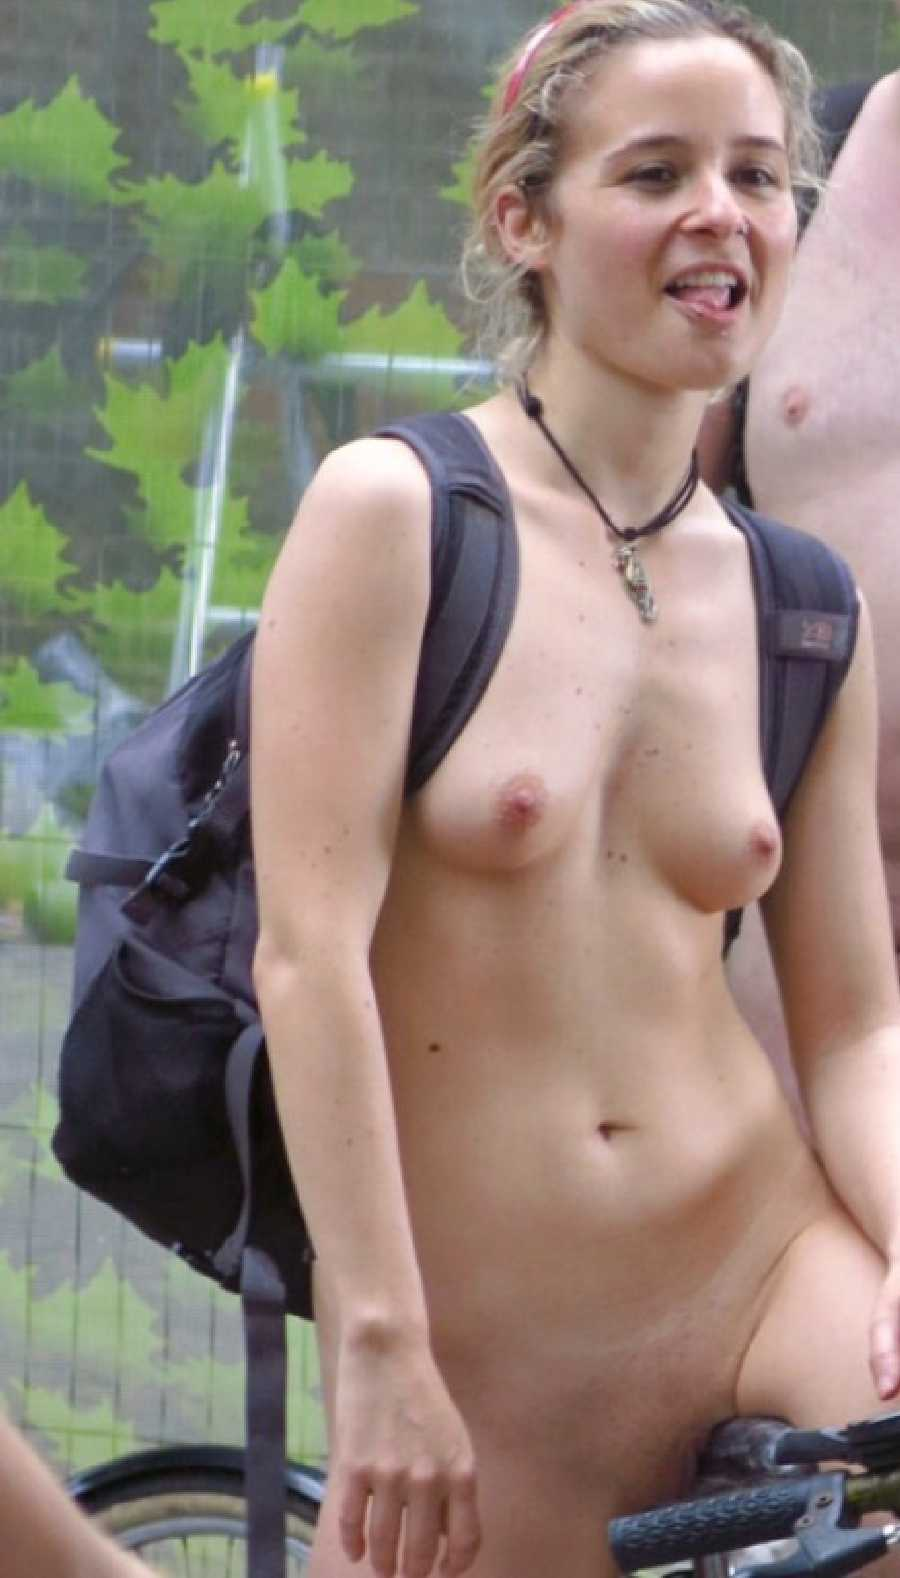 Oregon girls nude